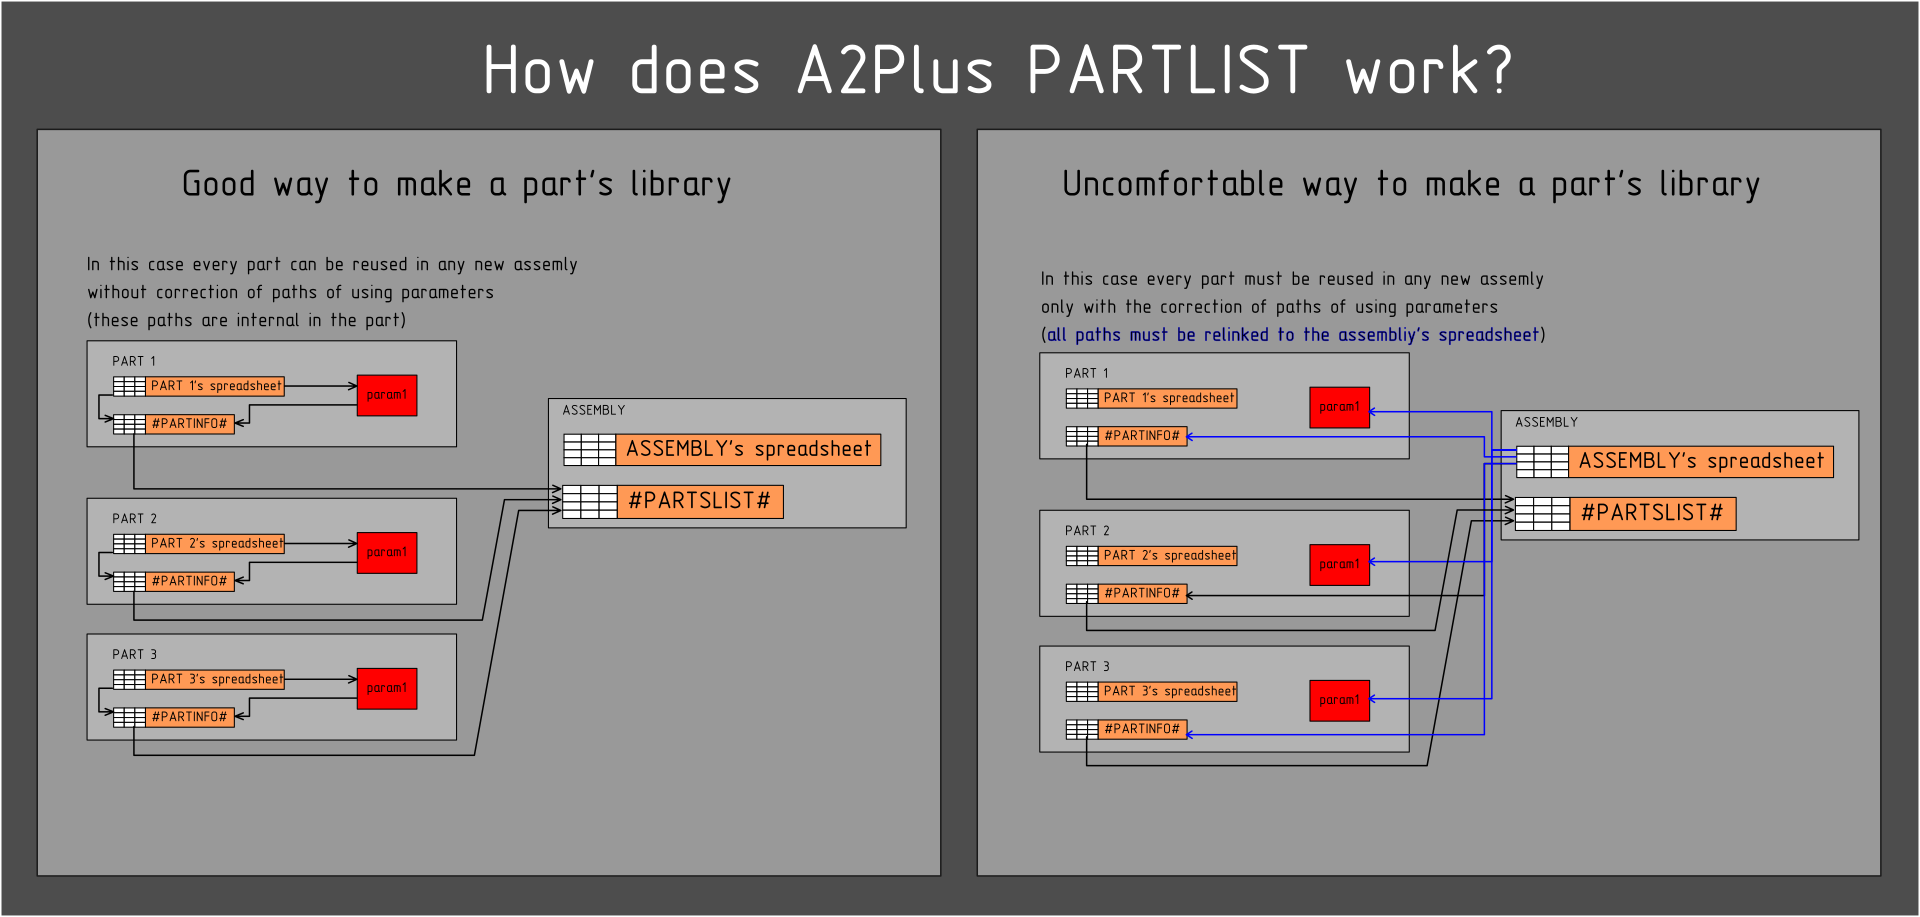 A2Plus PARTLIST links.png